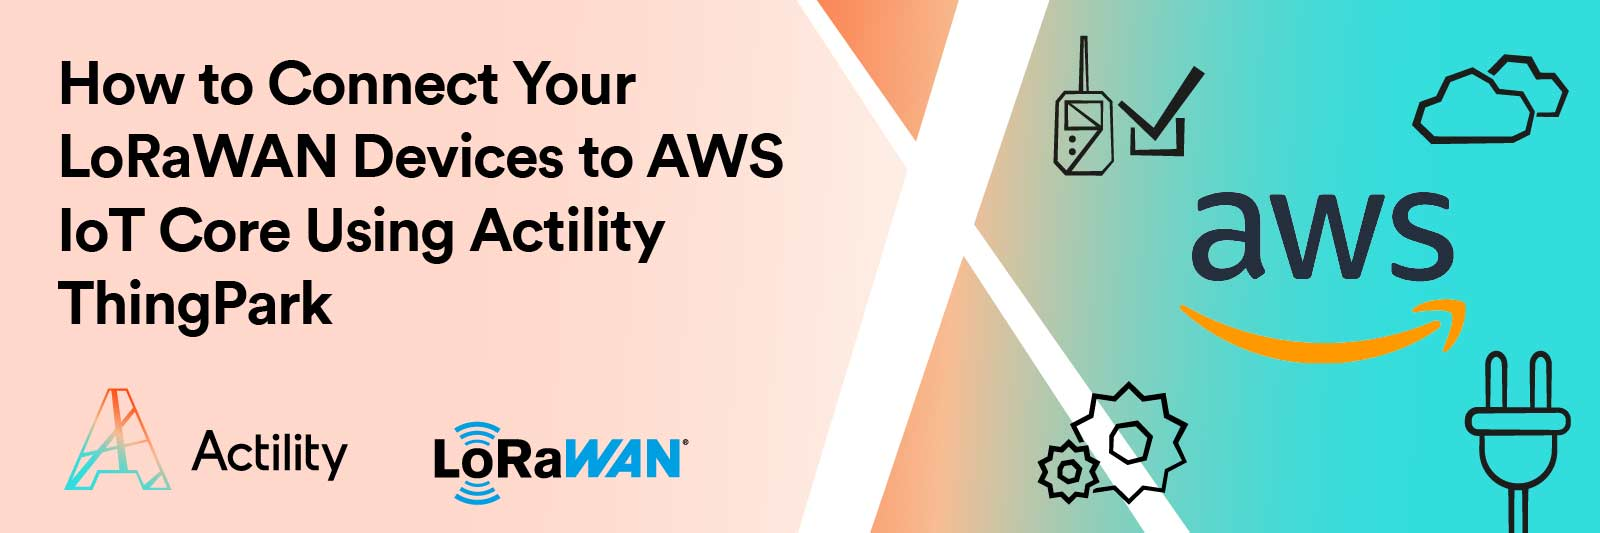 image header for AWS press release